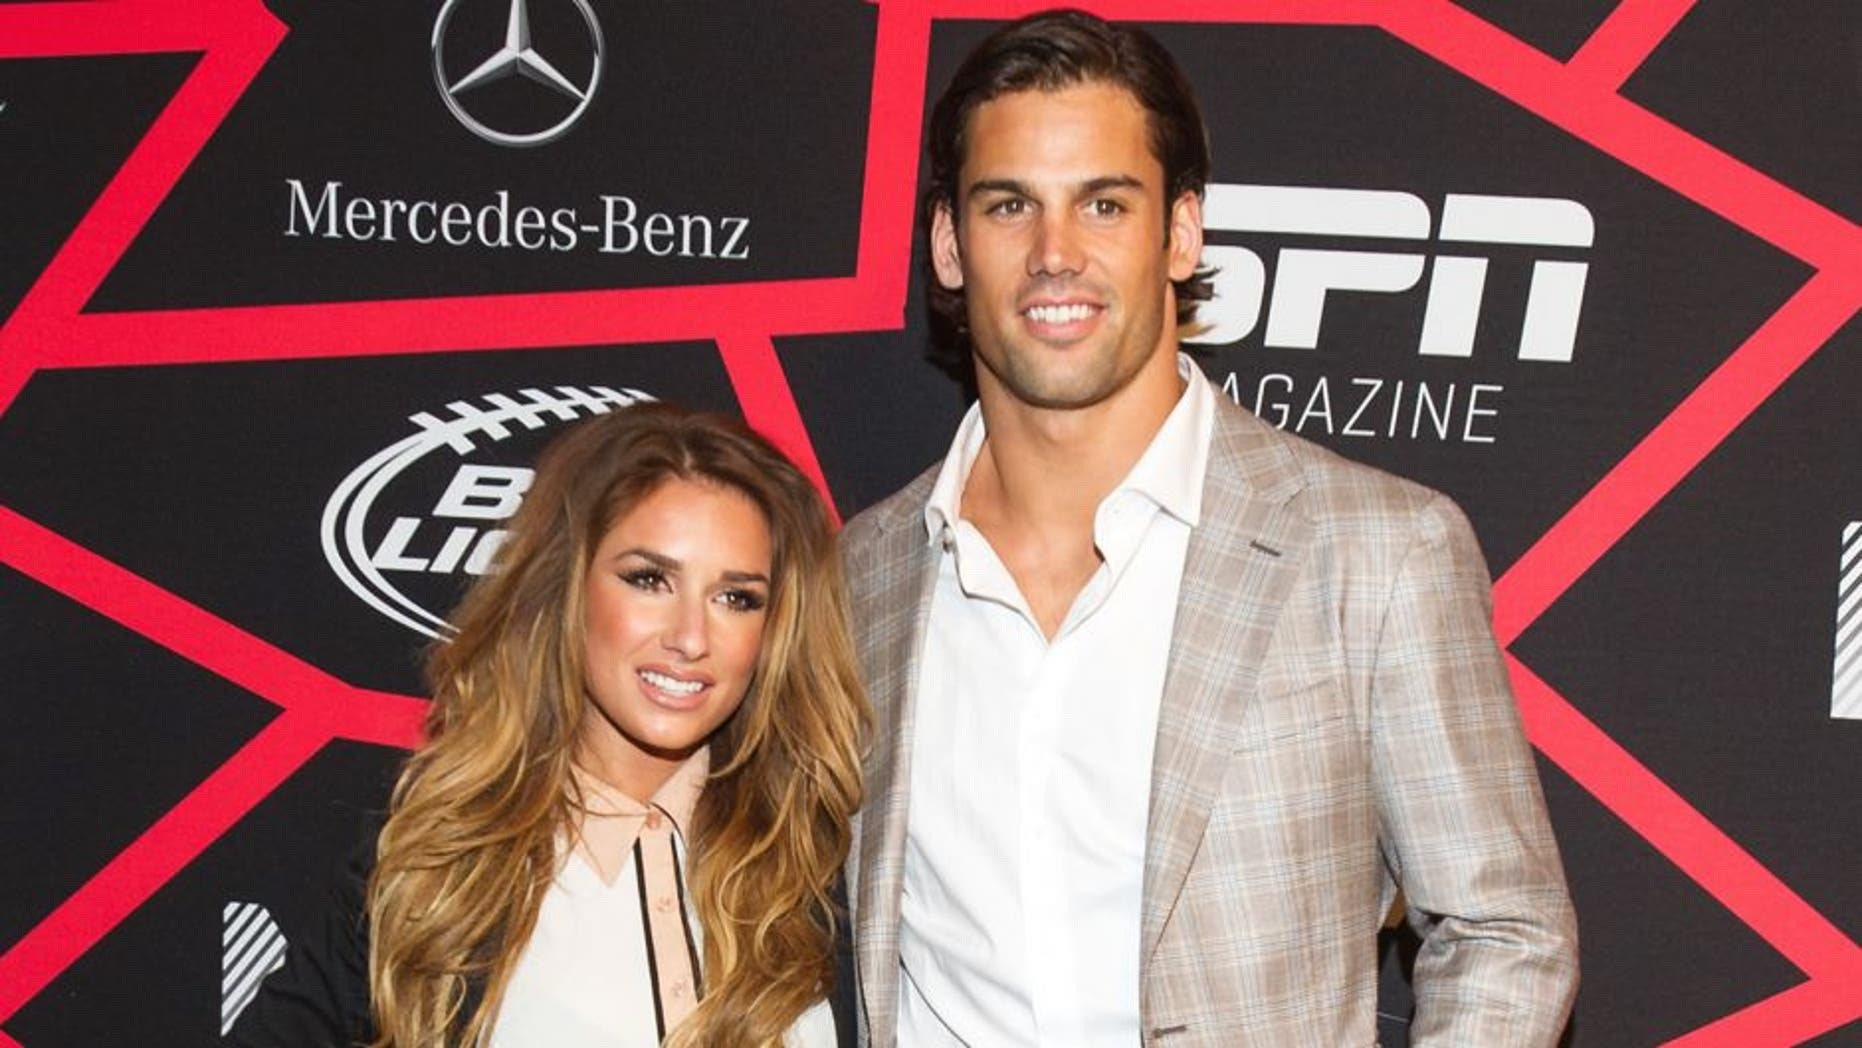 """NEW ORLEANS, LA - FEBRUARY 01: Jessie James and Eric Decker attends ESPN The Magazine's """"Next"""" Event at Tad Gormley Stadium on February 1, 2013 in New Orleans, Louisiana. (Photo by Michael Chang/FilmMagic)"""